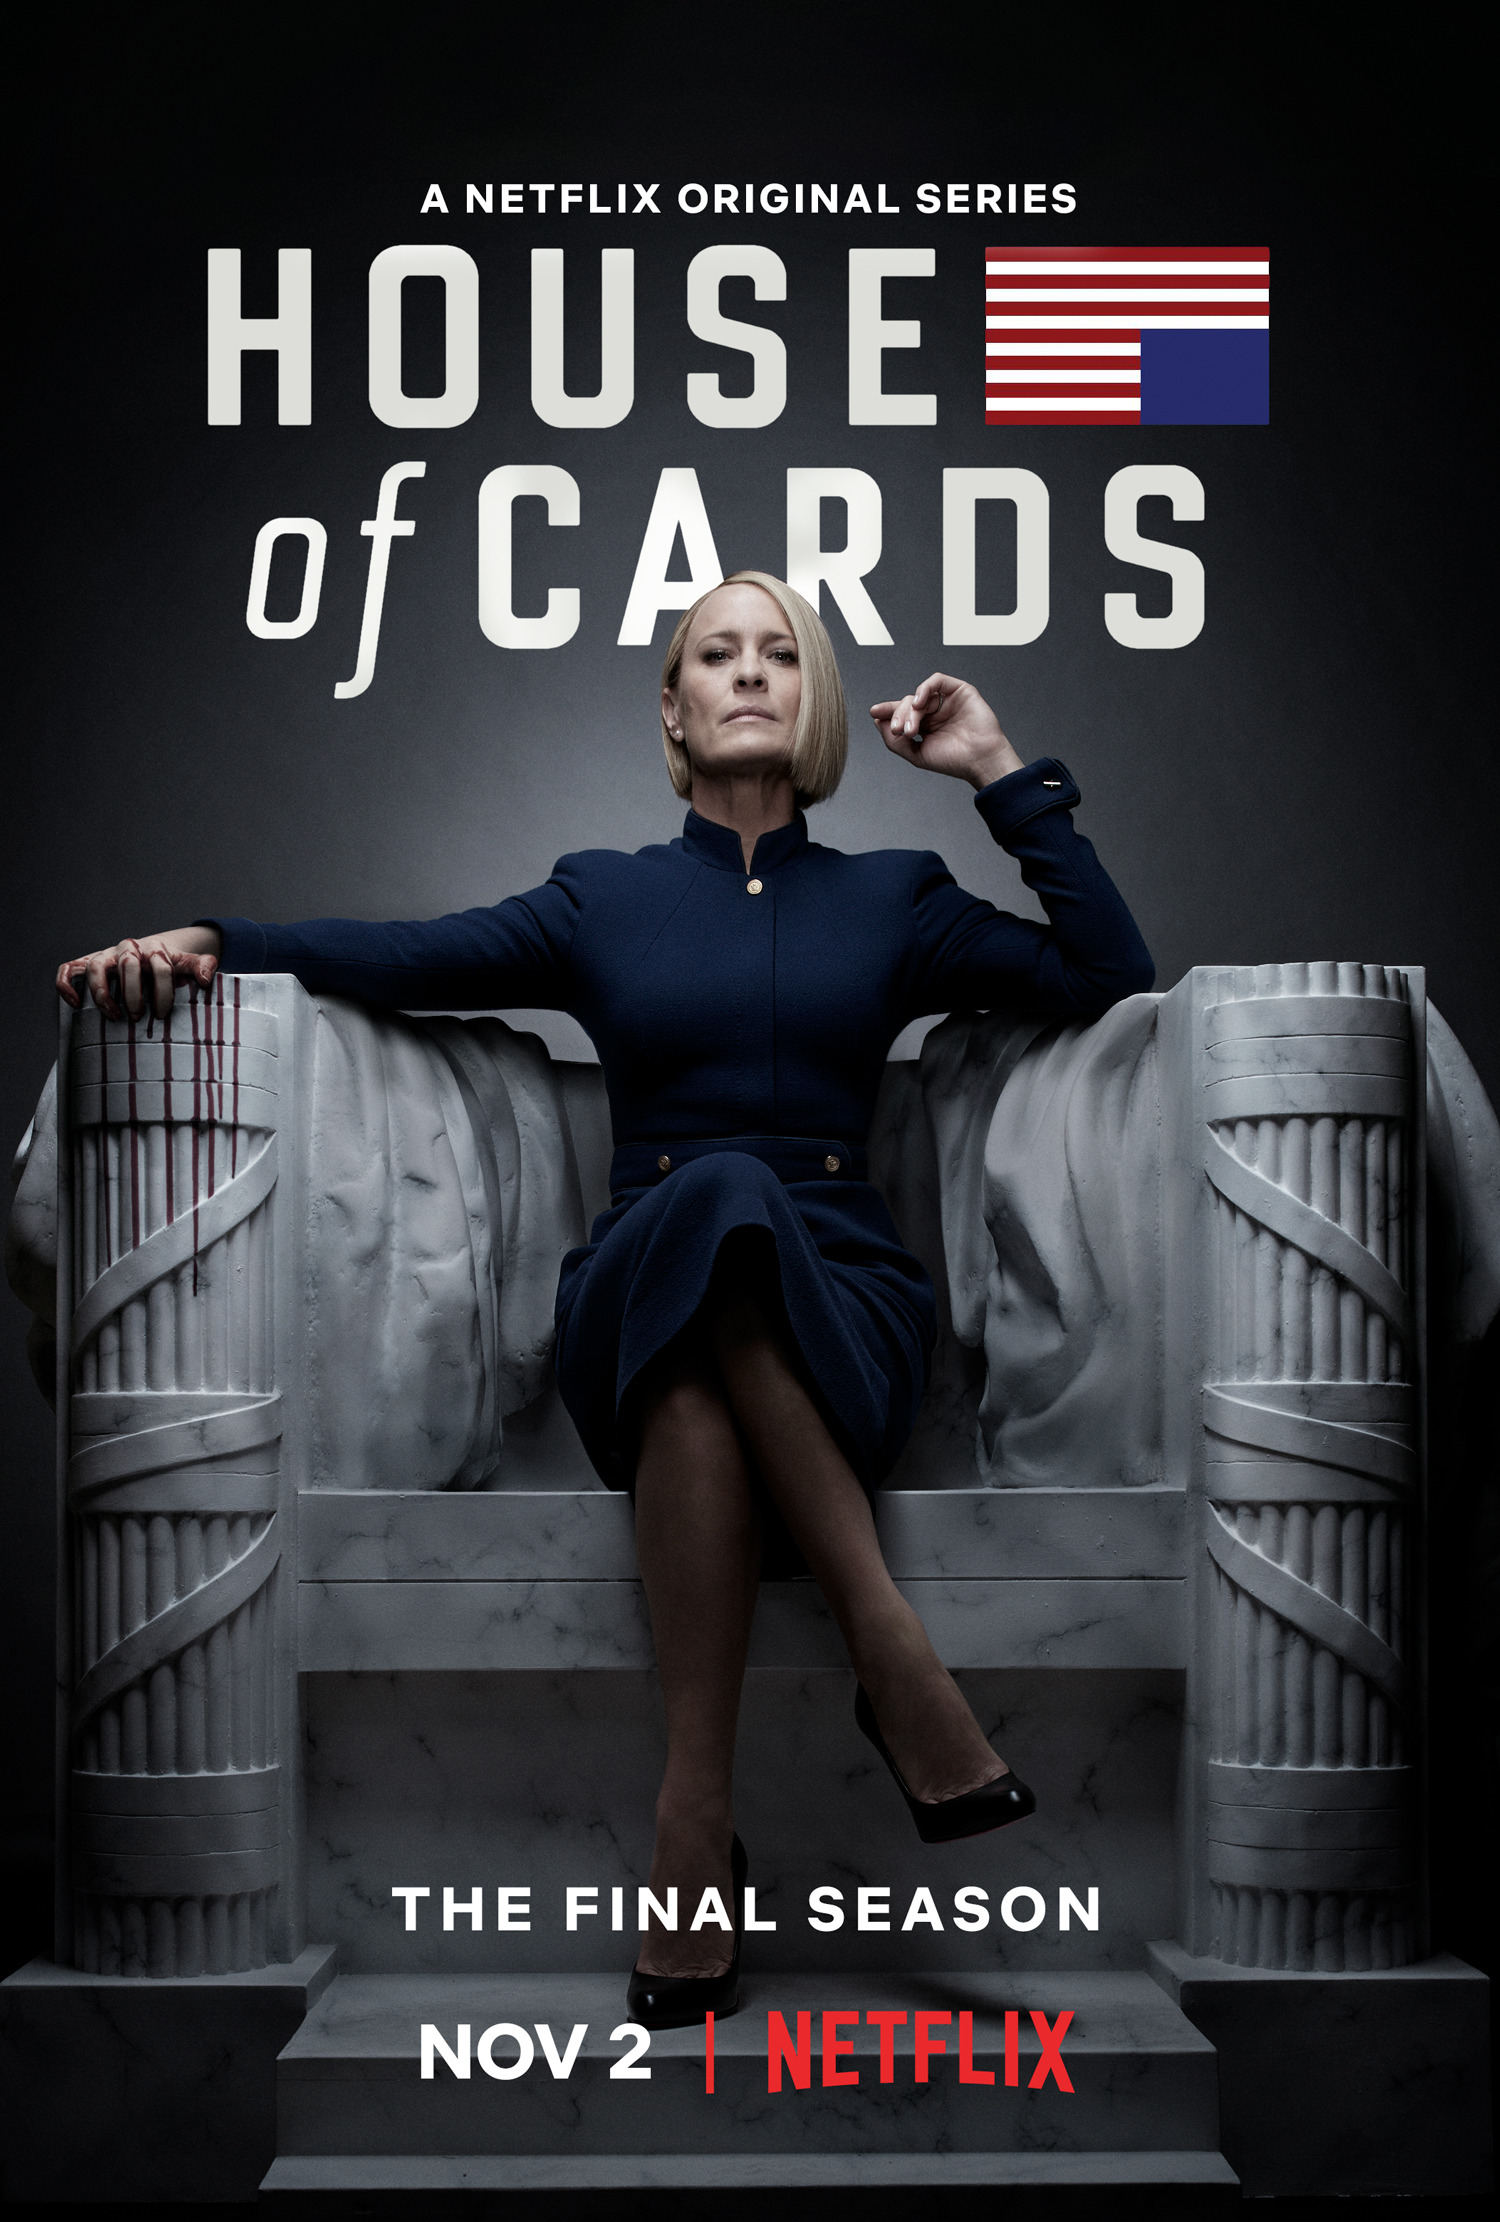 House_of_Cards_Season_6_poster.jpg